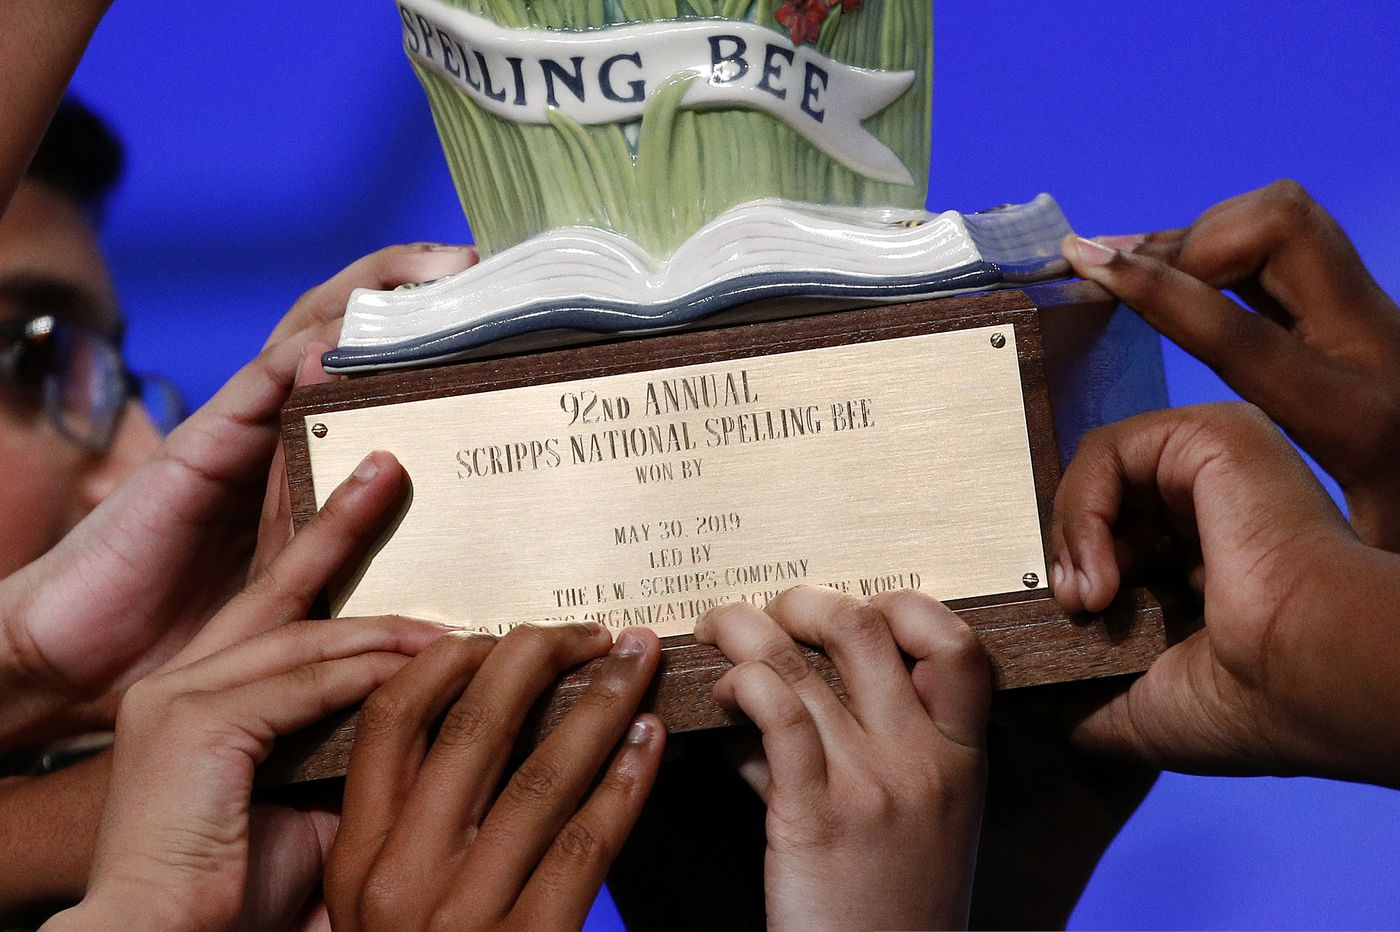 Scripps National Spelling Bee canceled due to coronavirus